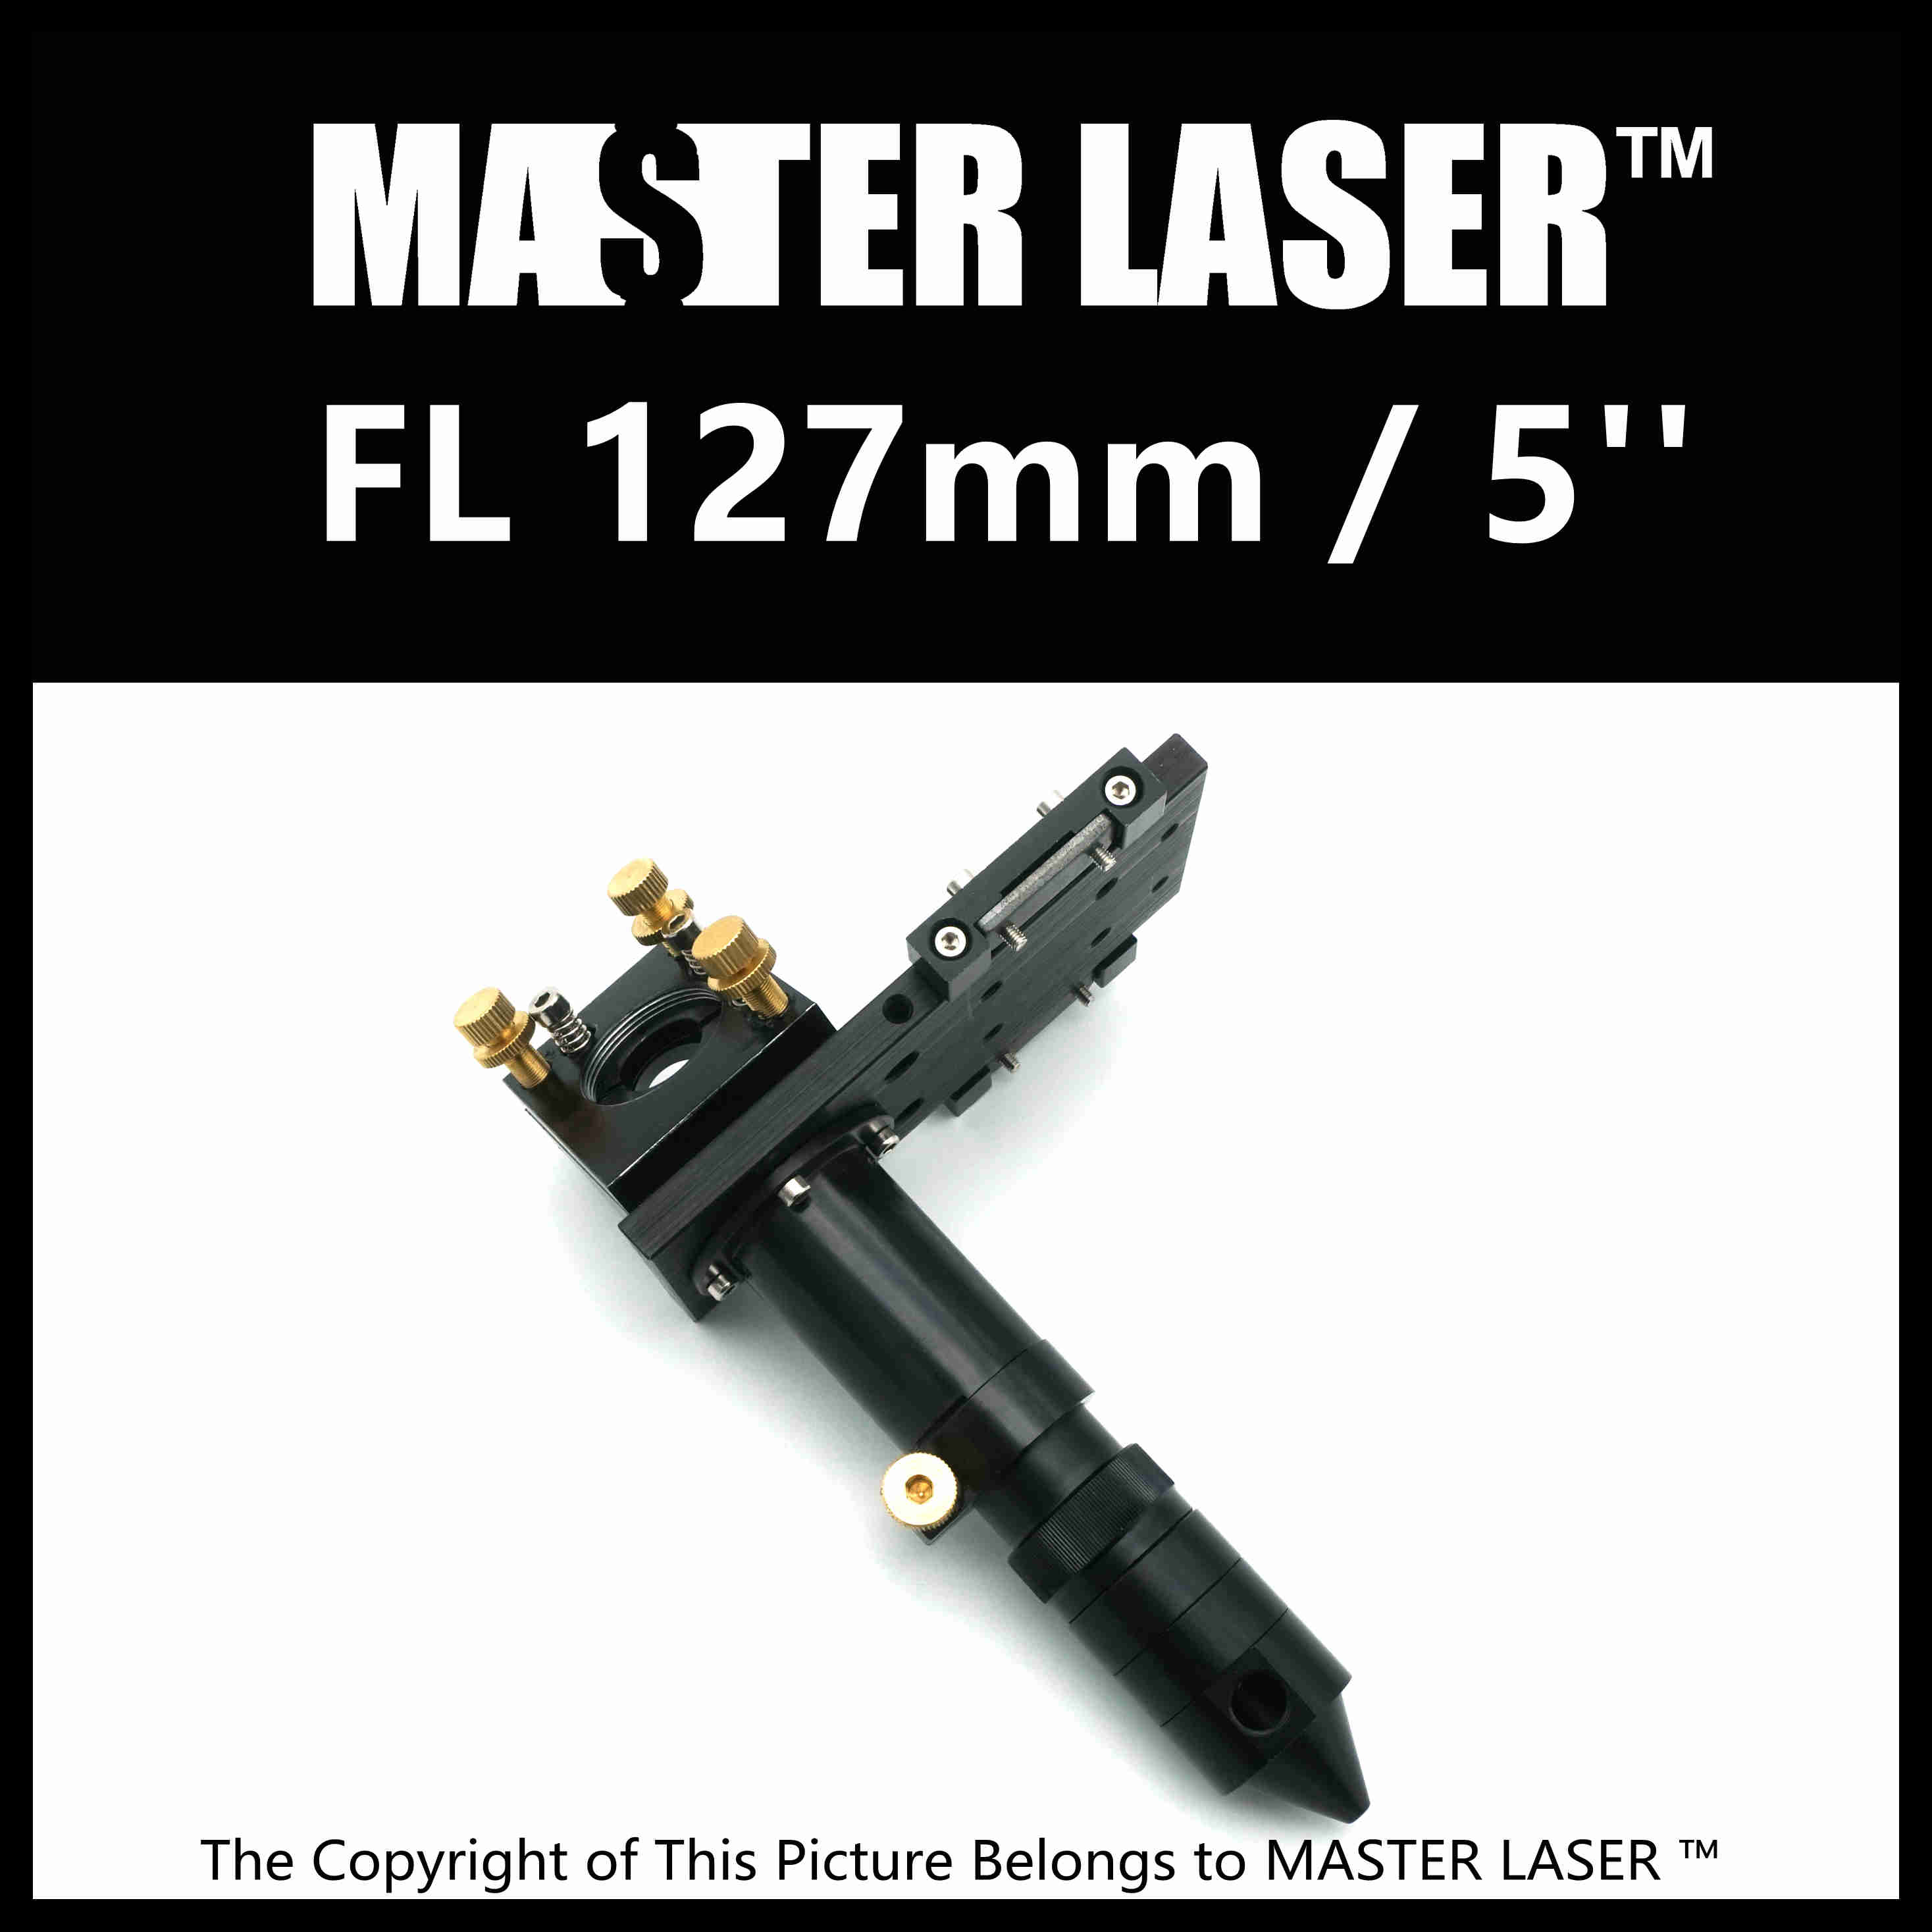 Laser Head for Focus Lens Dia. 19 & 20mm FL127mm Mirror 25mm Mount for Laser Engraving Cutting Machine